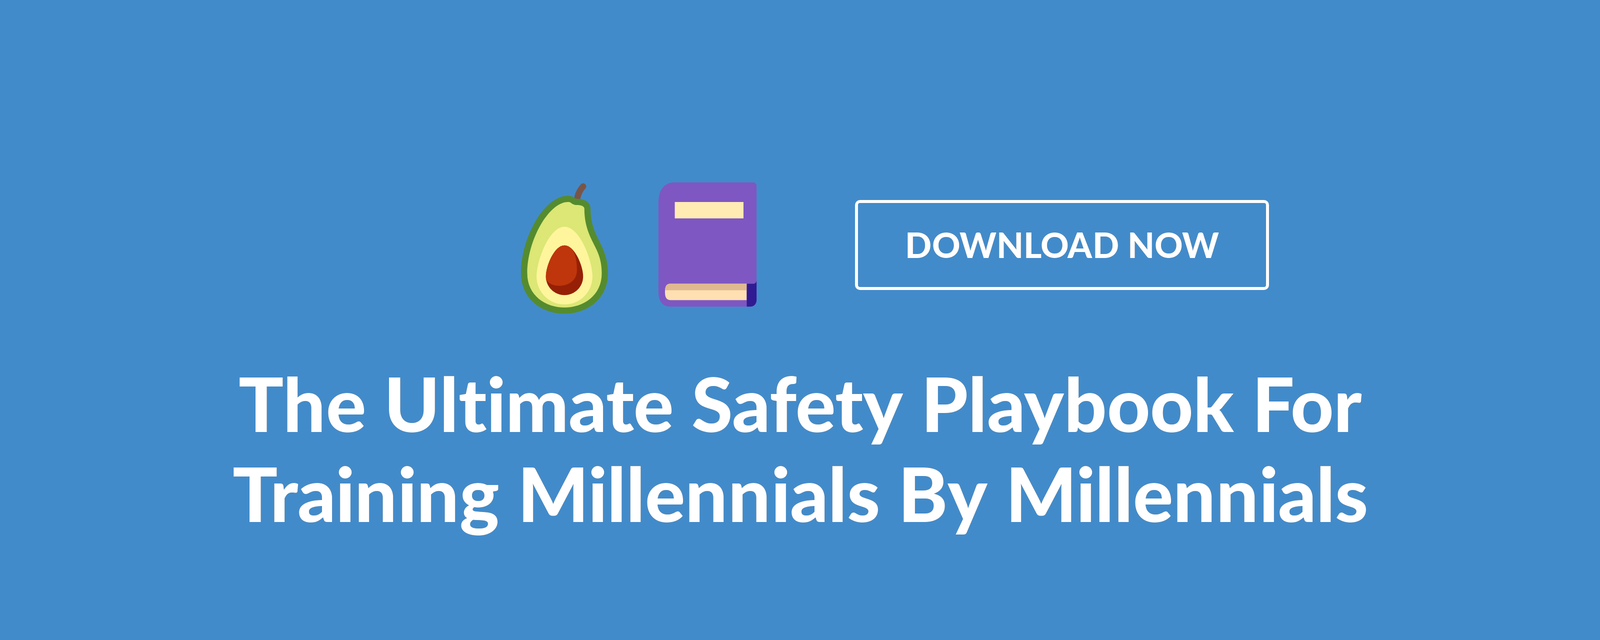 The Ultimate Safety Playbook For Training Millennials By Millennials